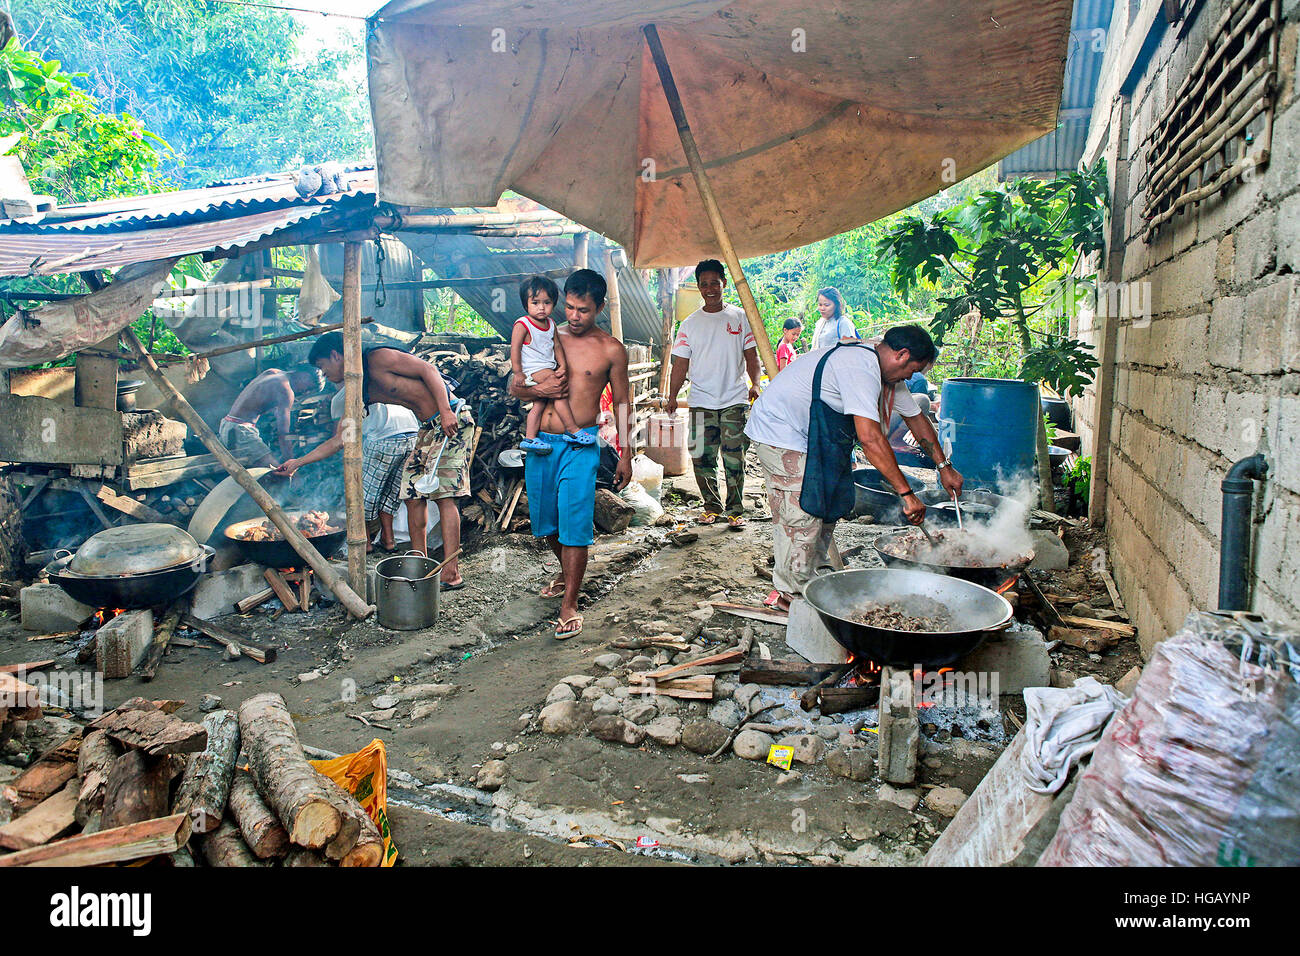 Outdoor Kitchen People High Resolution Stock Photography And Images Alamy